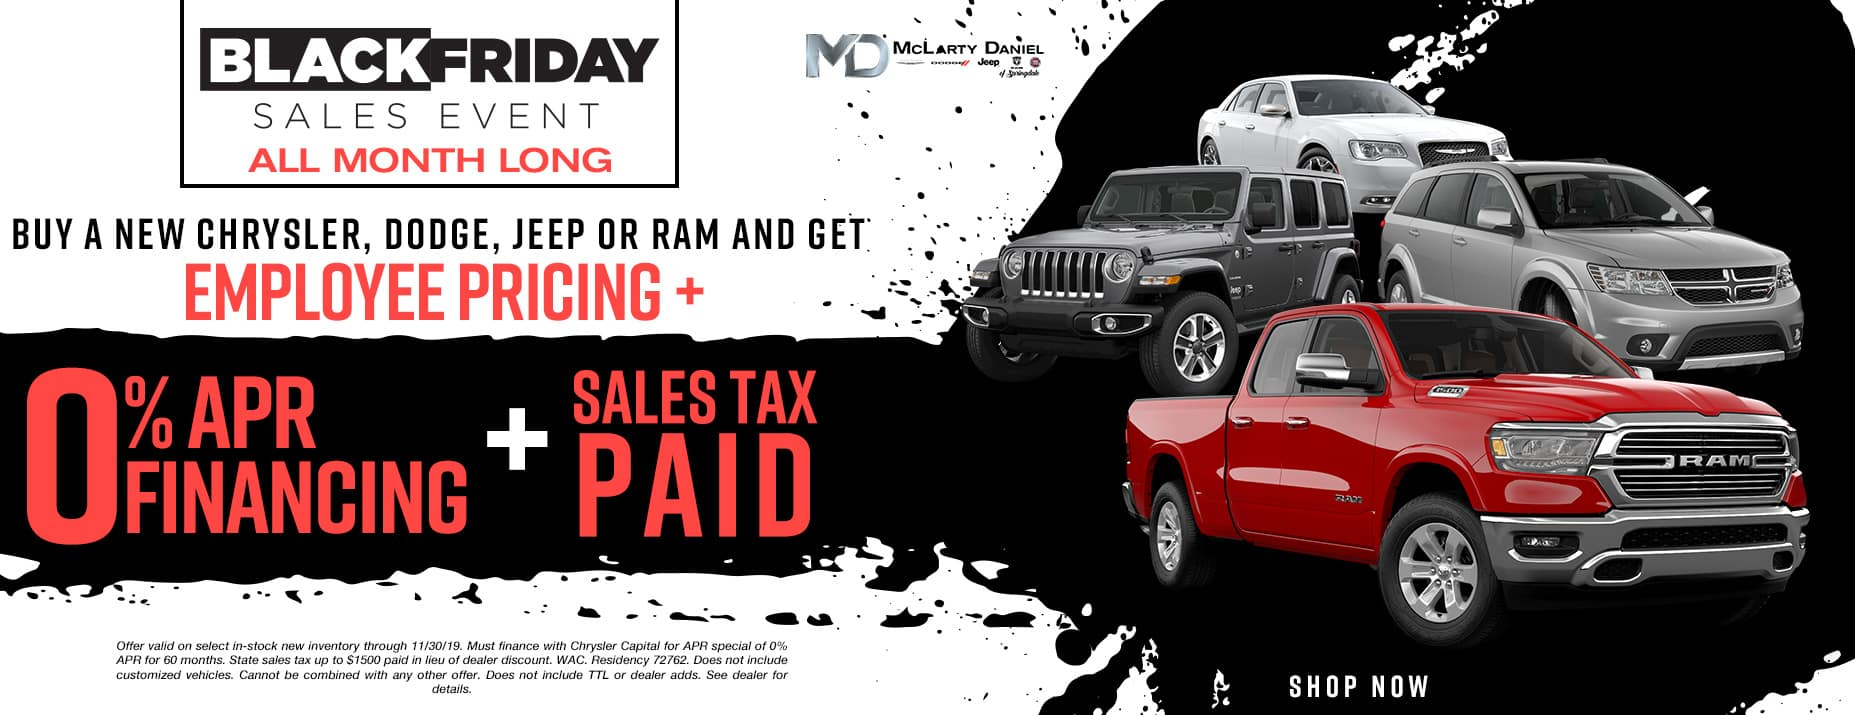 EMPLOYEE PRICING FOR EVERYONE DURING THE BLACK FRIDAY SALES EVENT! BUY A NEWCHRYSLER, DODGE, JEEP or RAMAND GETEMPLOYEE PRICING -PLUS- 0% APR -PLUS- SALES TAX PAID!